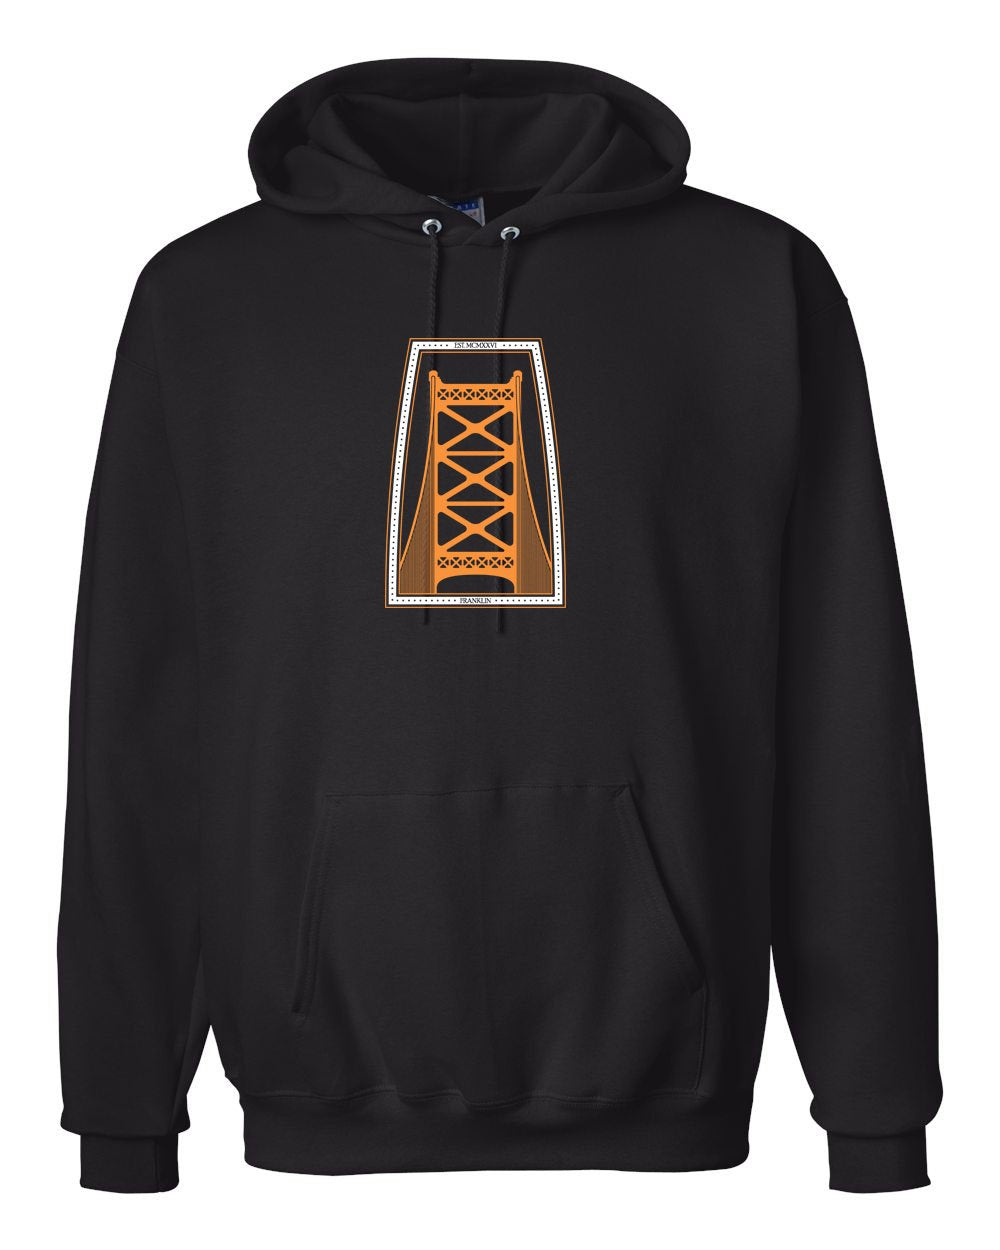 Ben Franklin Bridge Hockey Hoodie